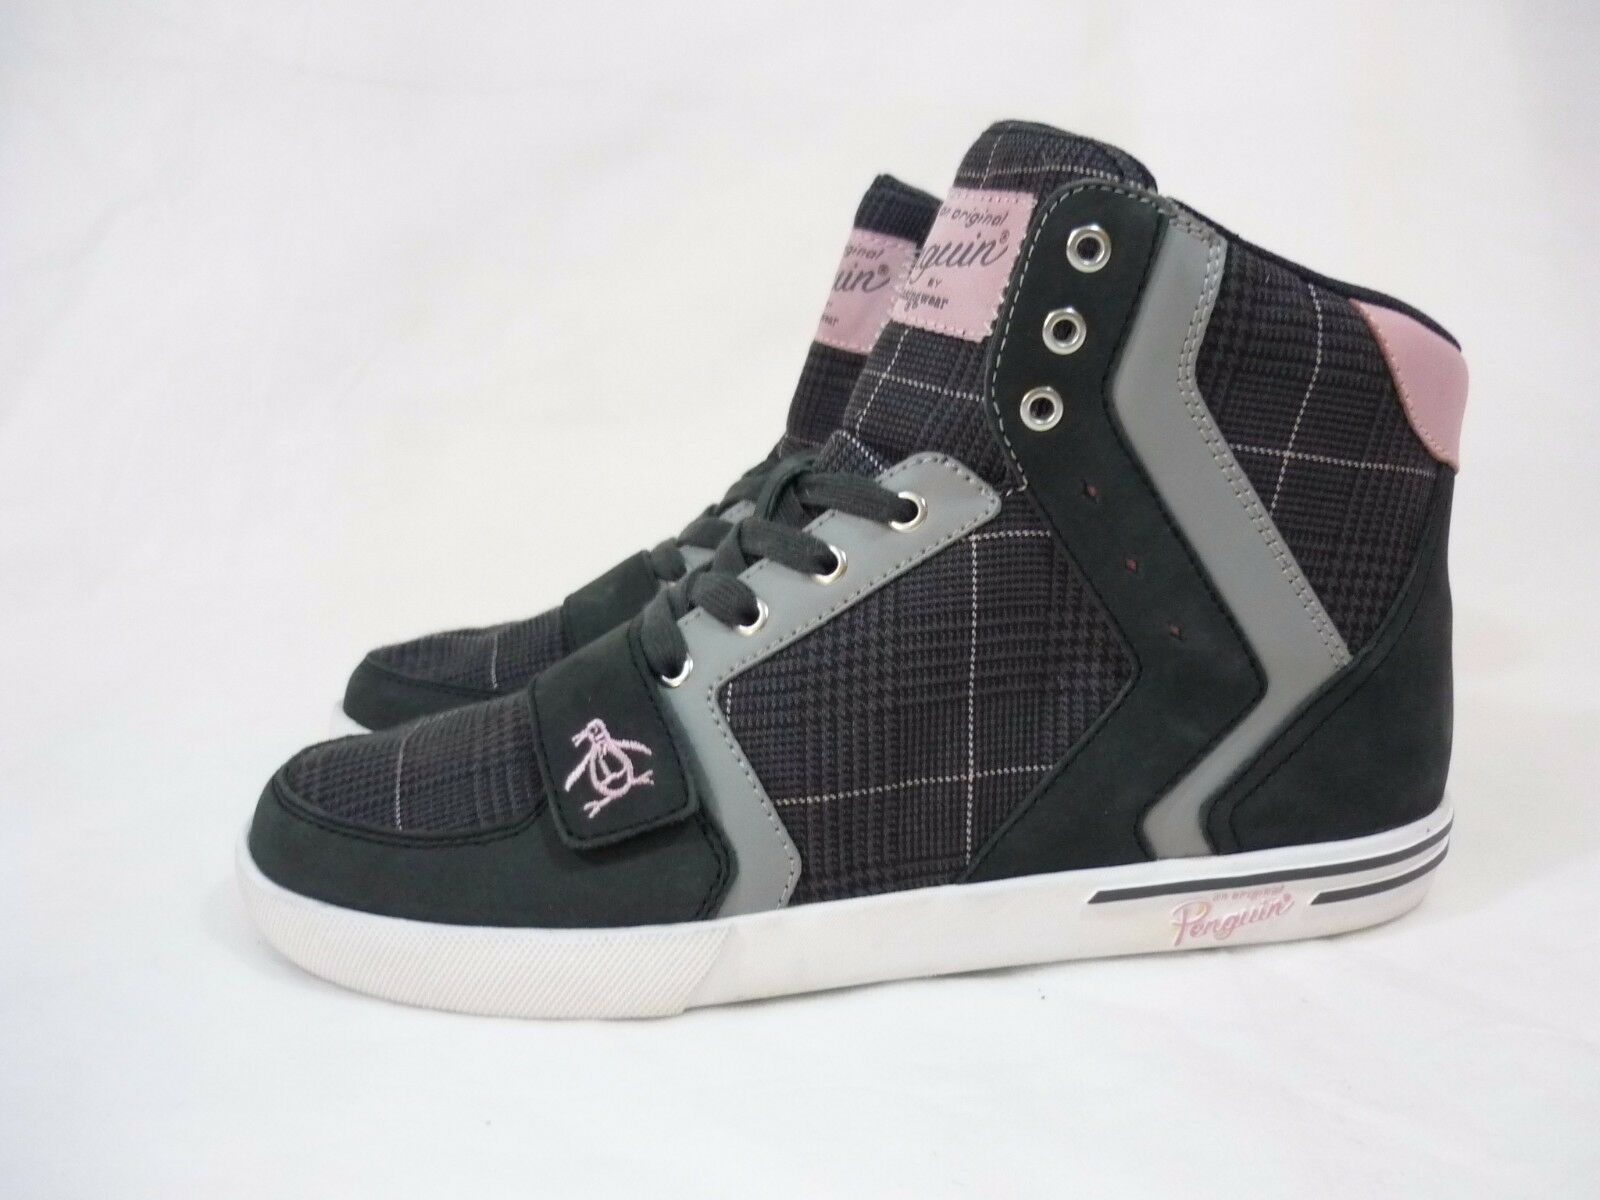 Original Penguin Moby Hi Top Sneakers Men's Shoes Dark Shadow Size 9 Leather New